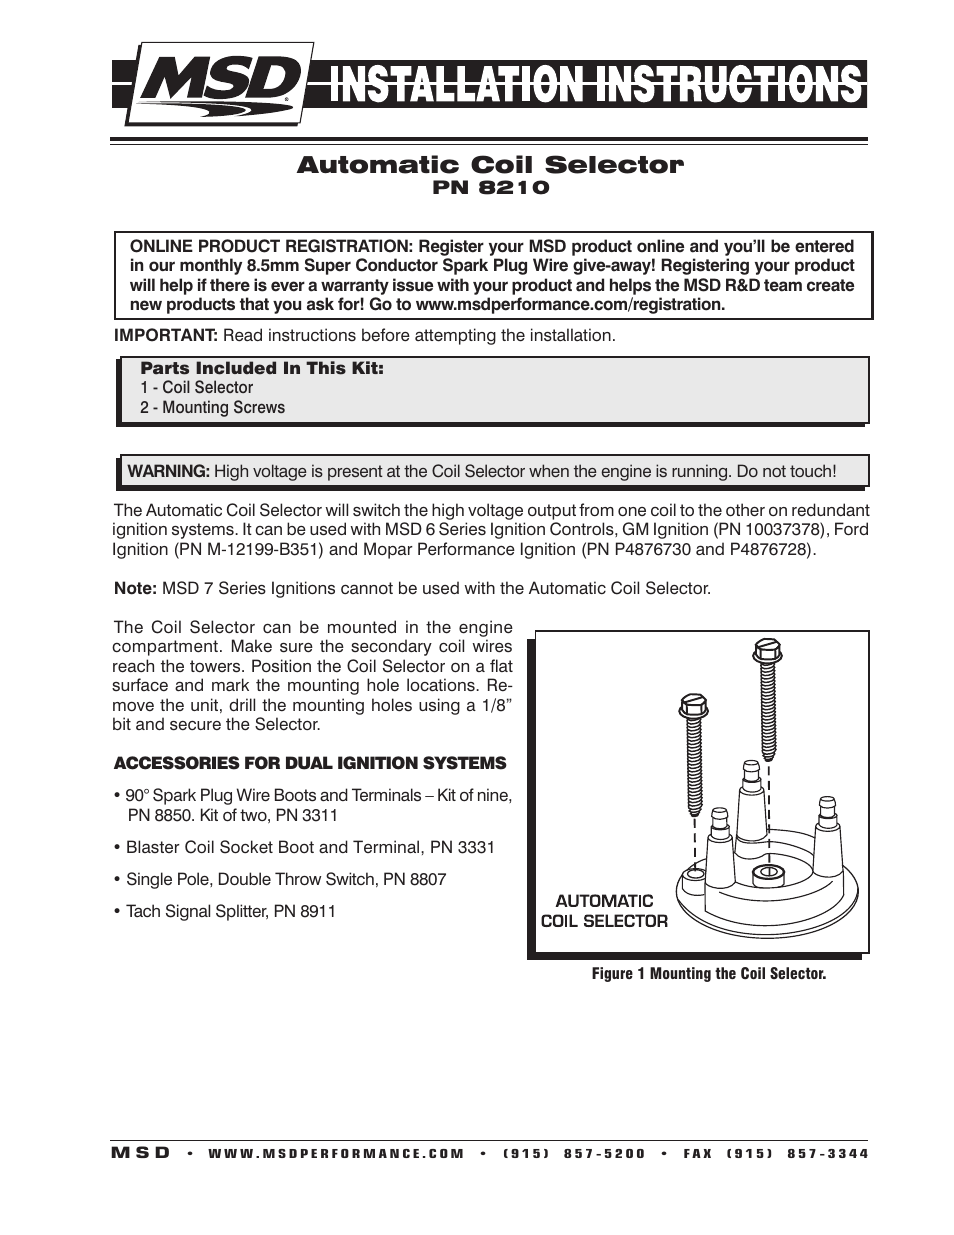 Msd 8210 Automatic Coil Selector Installation User Manual